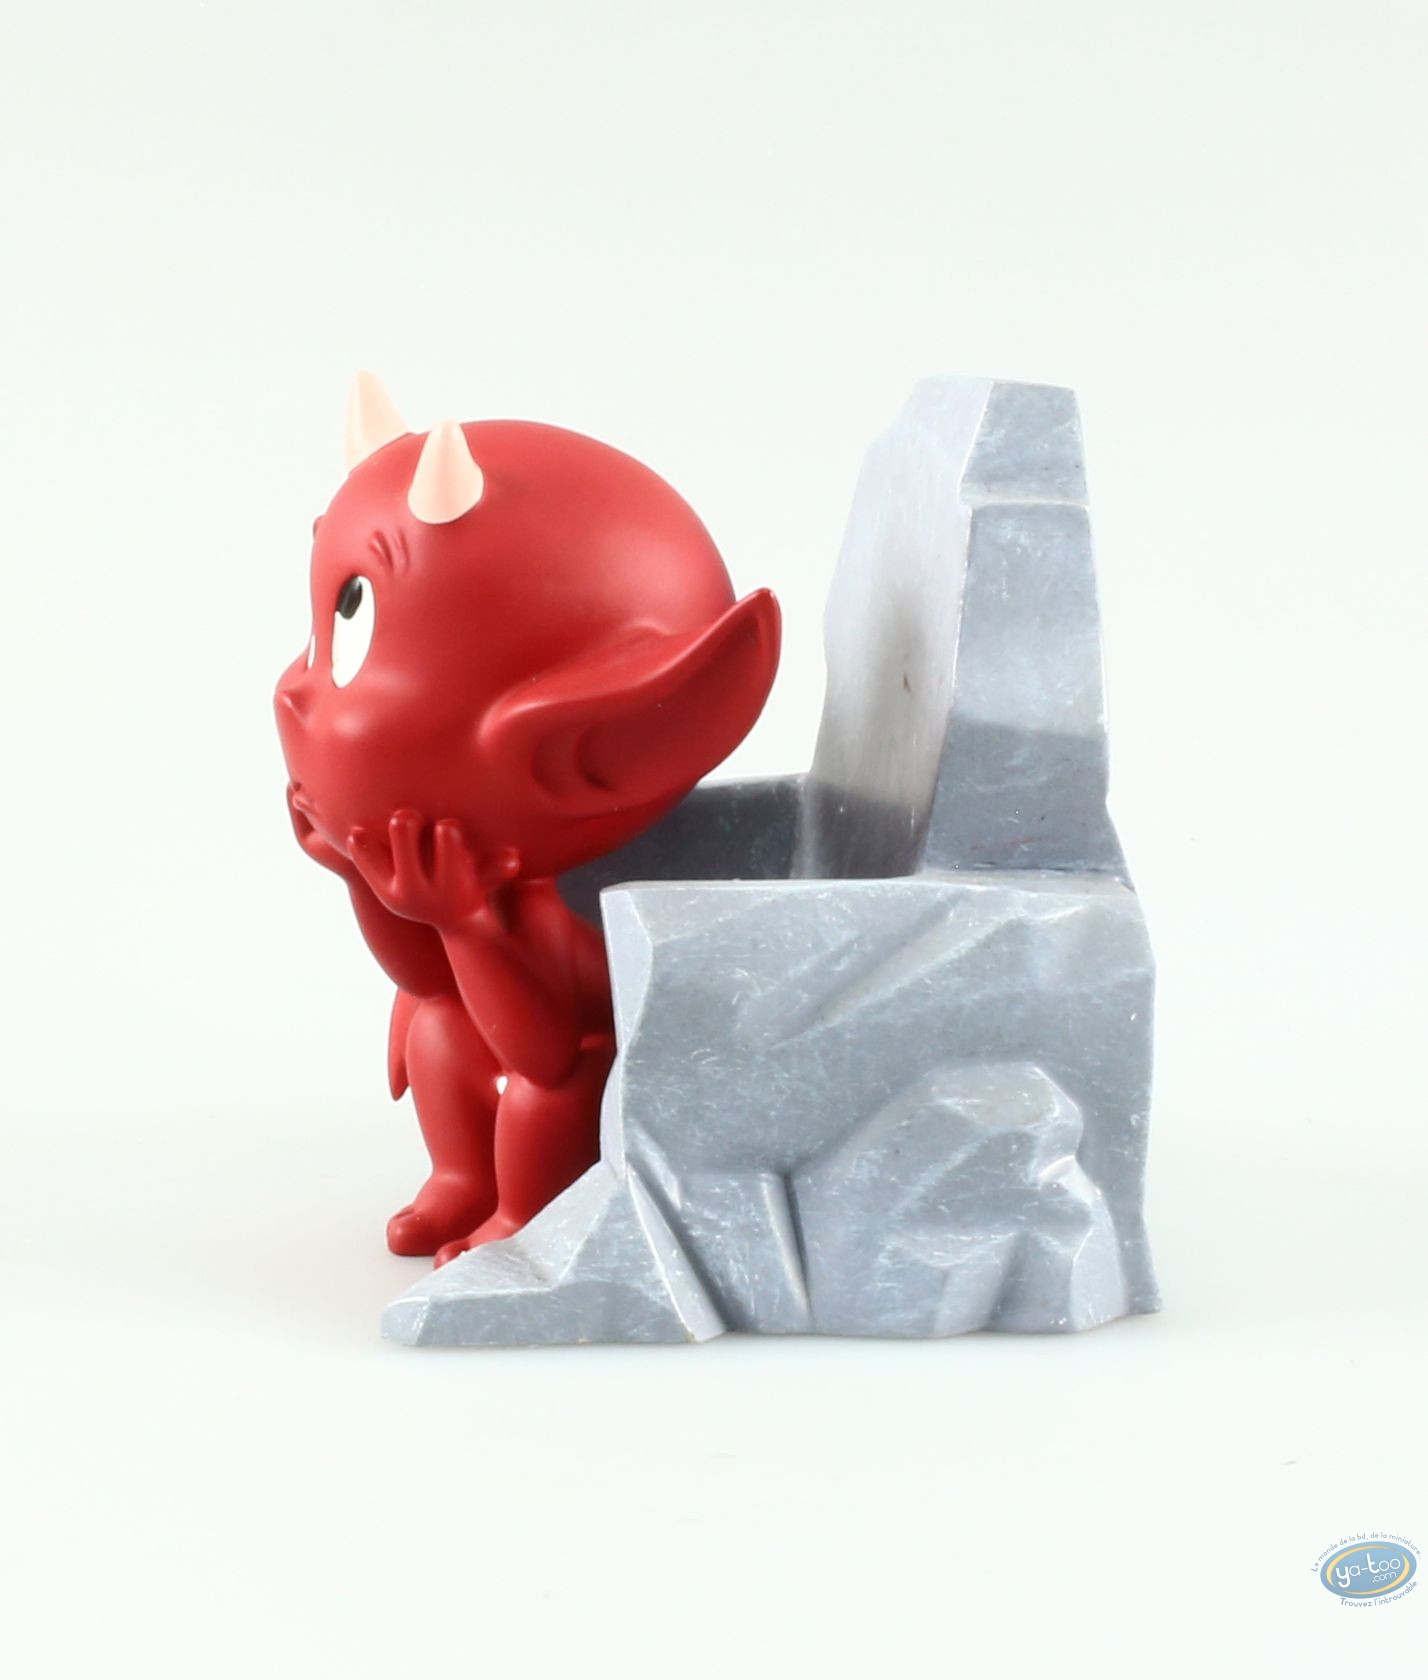 Resin Statuette, Hot Stuff : Hot Stuff sitting